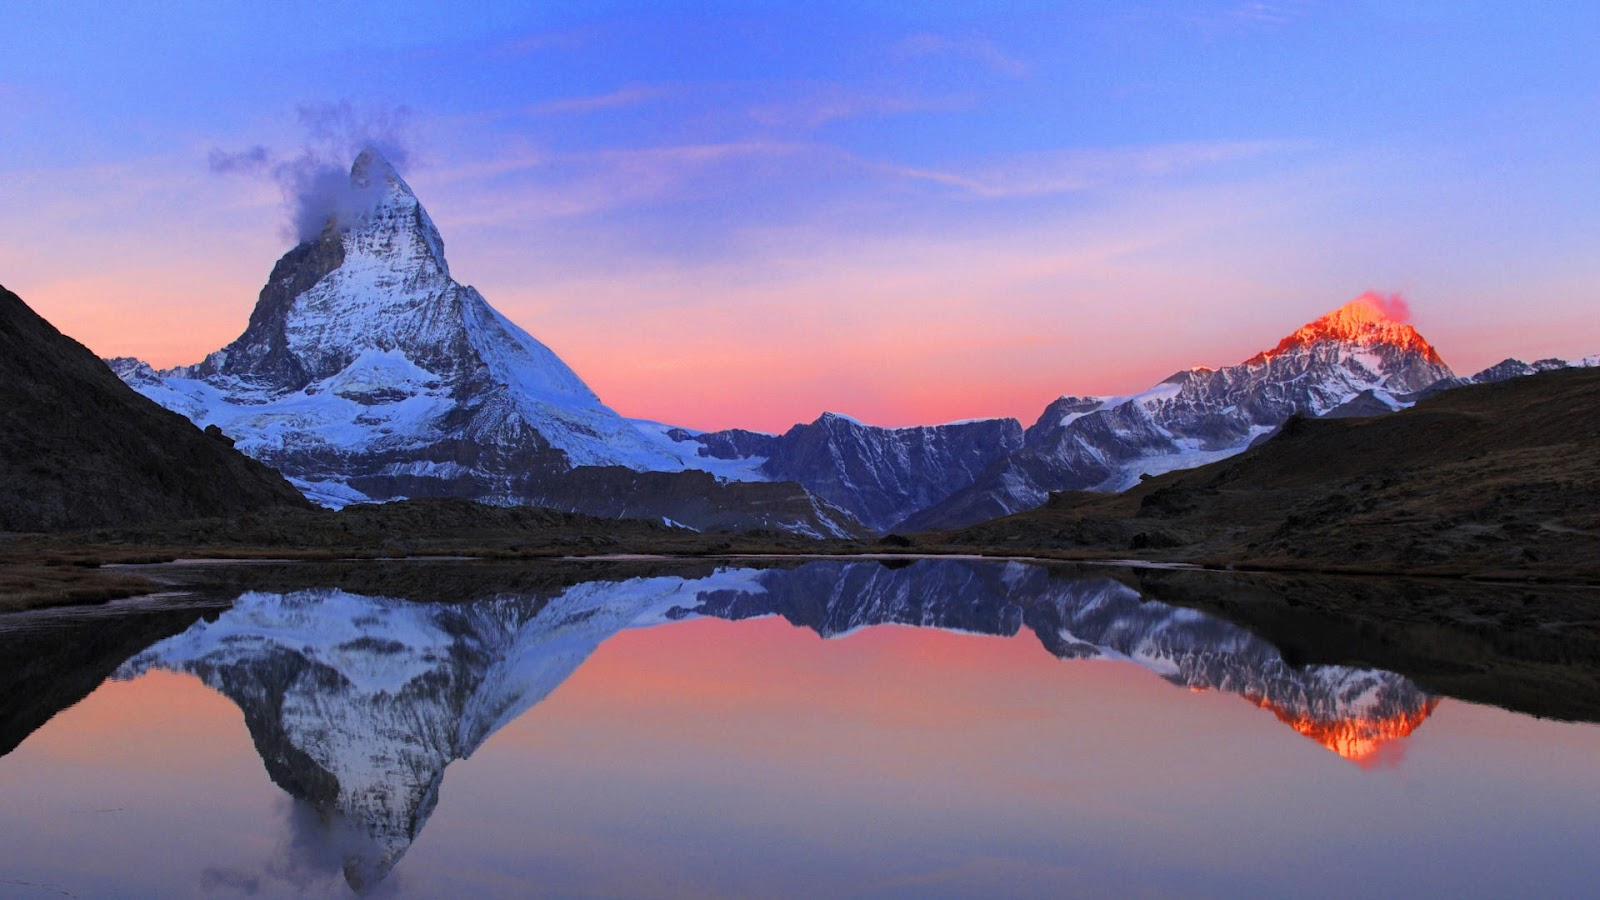 Top 37 most beautiful mountains wallpapers in hd - Swiss alps wallpaper ...